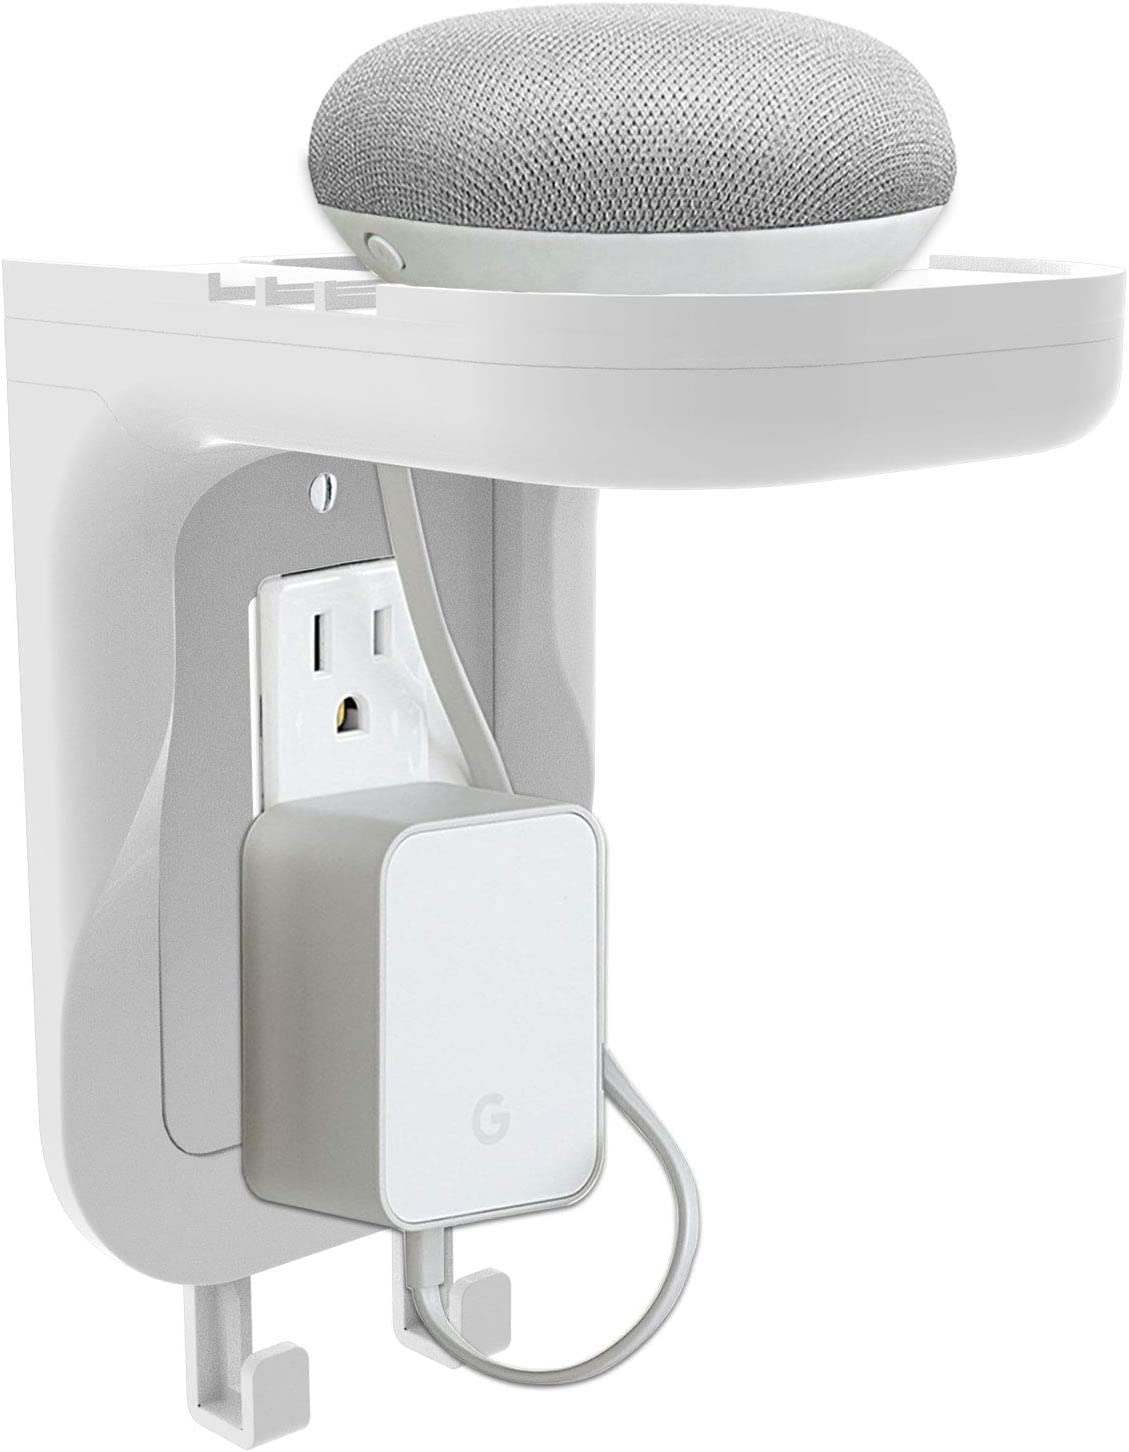 WALI Wall Bathroom Shelf Standard Vertical Duplex GFCI Décor Outlet Charging for Cell Phone, Dot, Google Home, Speaker up to 20lbs with Cable Management and Detachable Hooks (OSH001-W), White